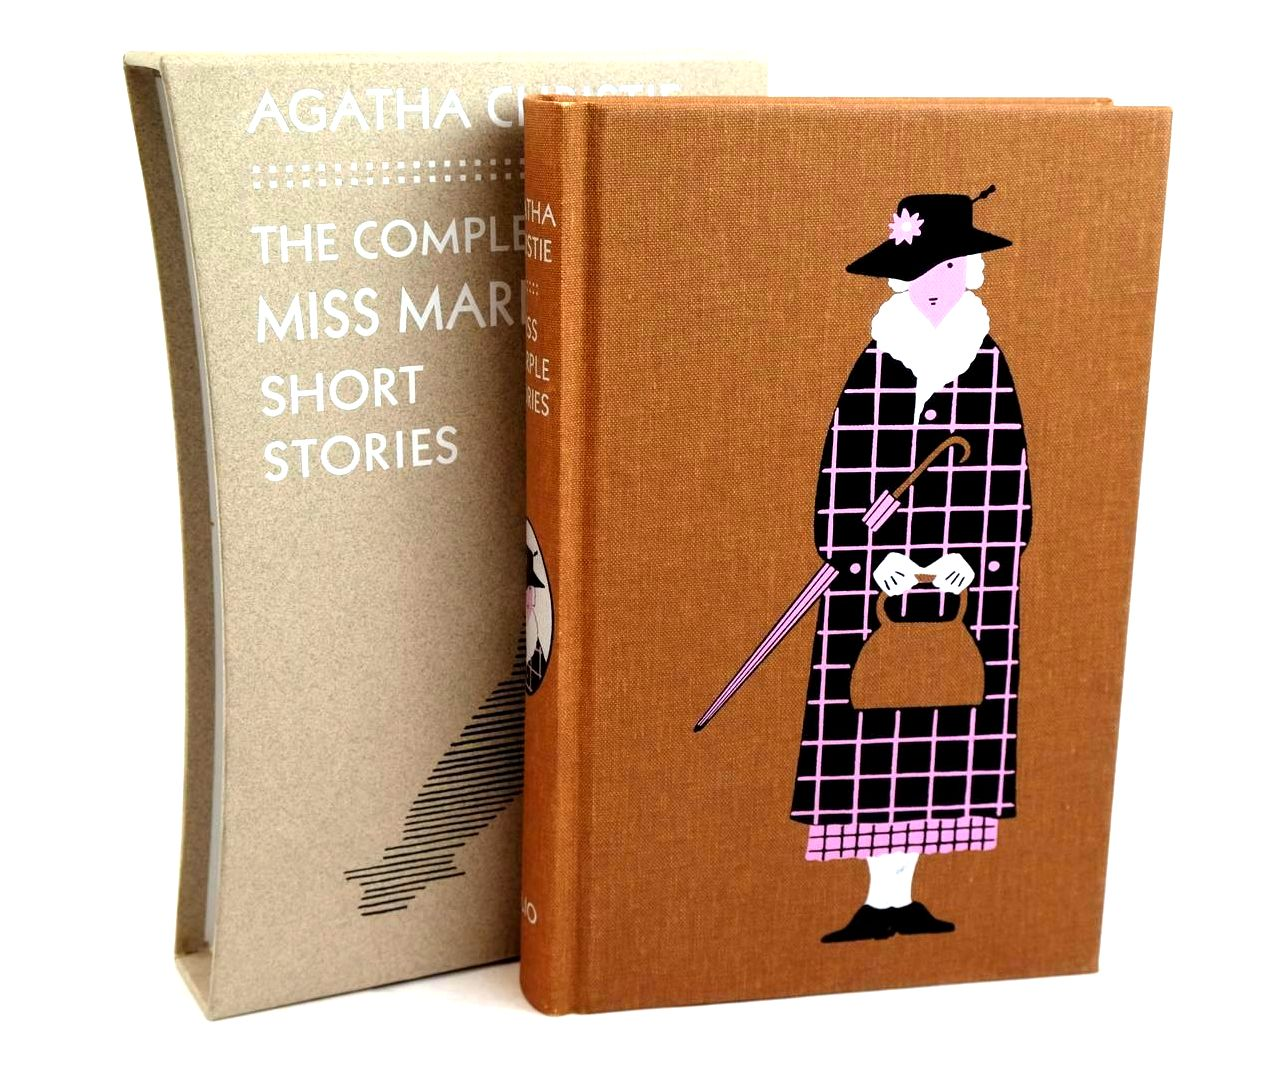 Photo of THE COMPLETE MISS MARPLE SHORT STORIES written by Christie, Agatha illustrated by Brown, Christopher published by Folio Society (STOCK CODE: 1320266)  for sale by Stella & Rose's Books